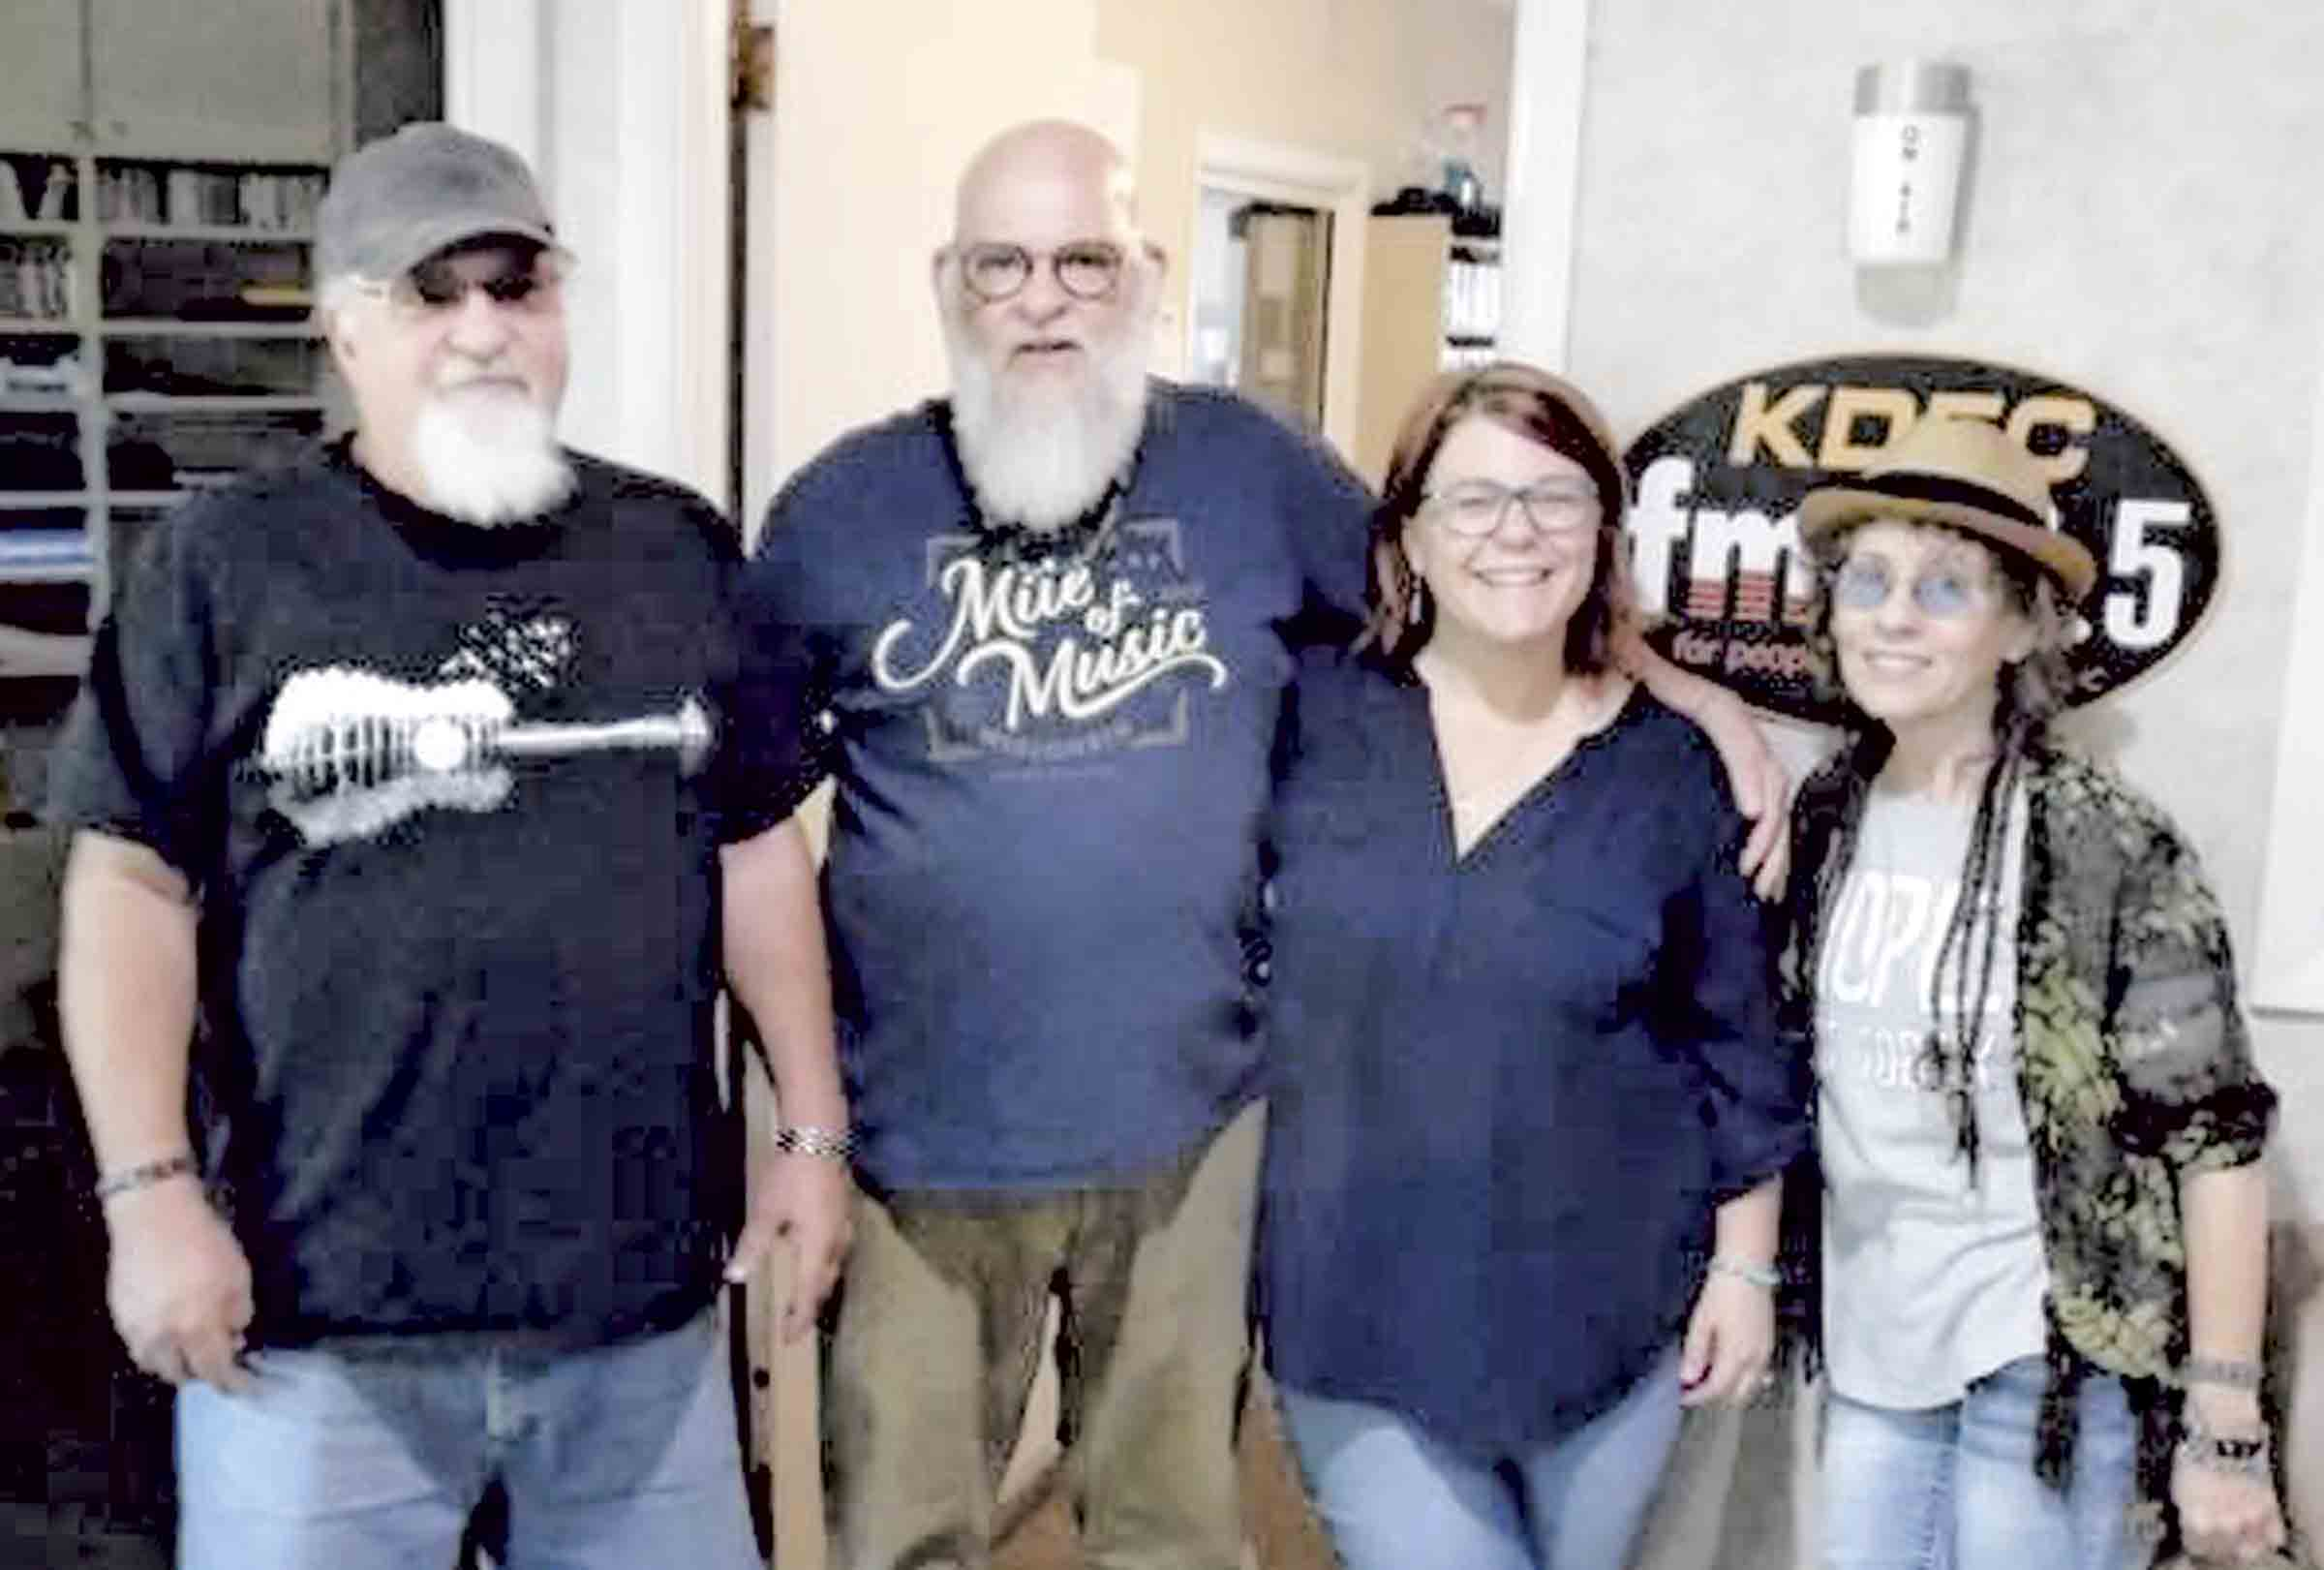 Patsy & the Plum St. Jam was formed a few years ago and has quickly become an area favorite, even being called in as guests on area radio shows.The band recently recorded its first CD, which should be ready for fans in the coming weeks. (submitted photo)Patsy...